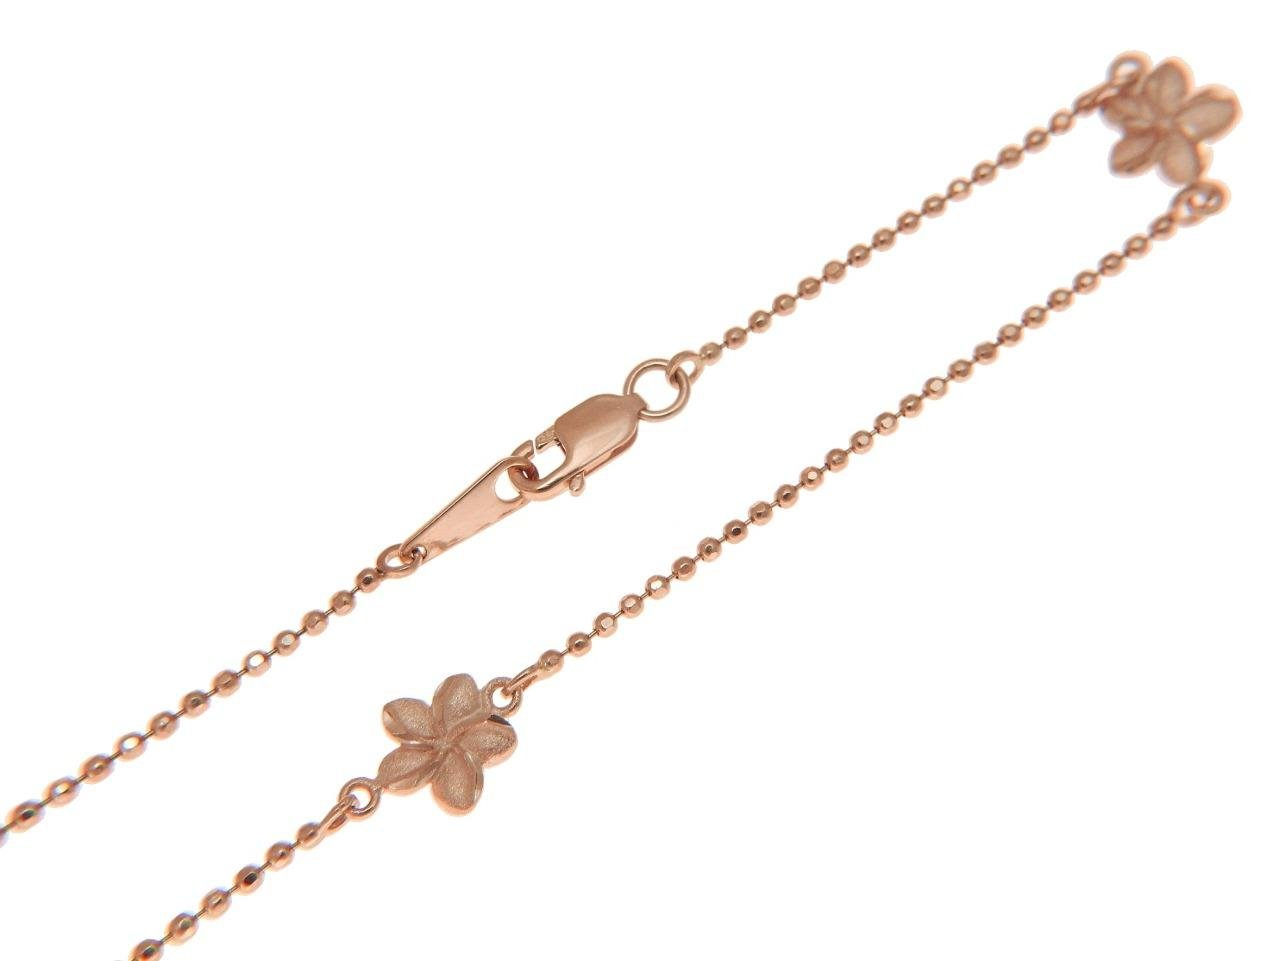 14k solid pink rose gold 2 sided Hawaiian plumeria diamond cut bead chain anklet 9''